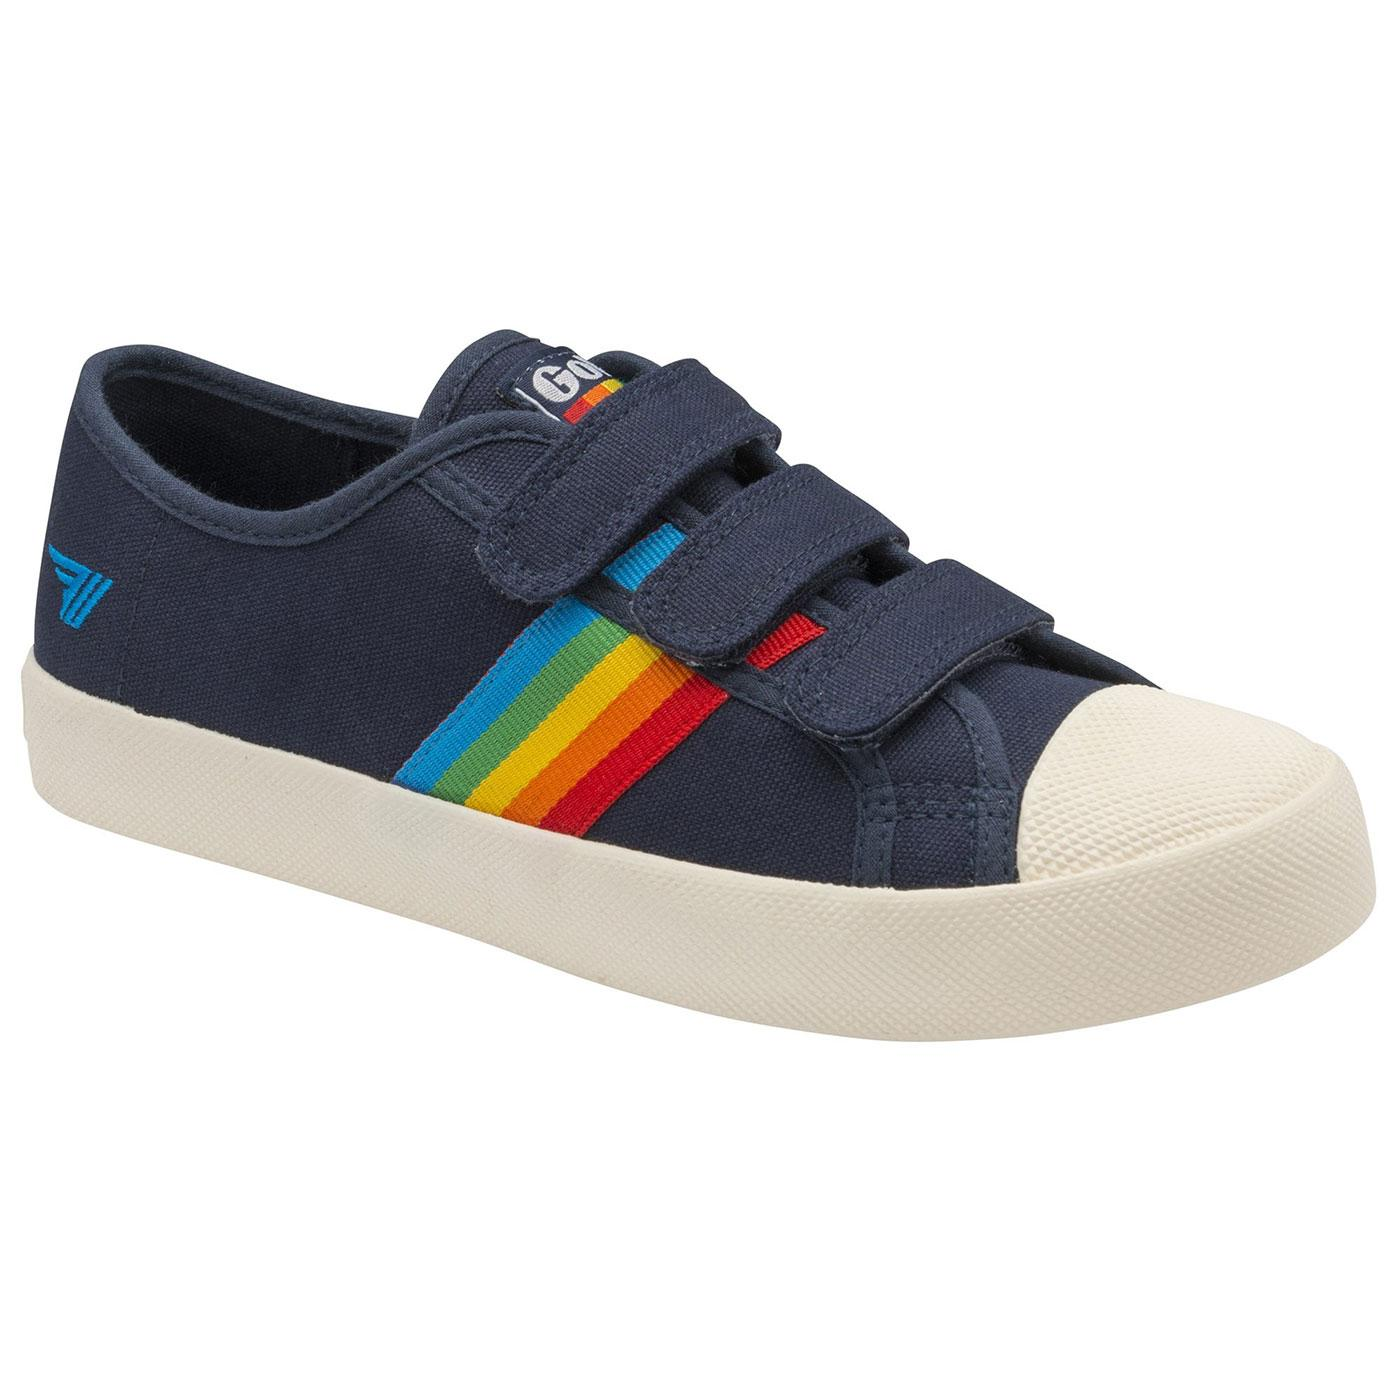 GOLA Coaster Rainbow Velcro Trainers (Navy/Multi)